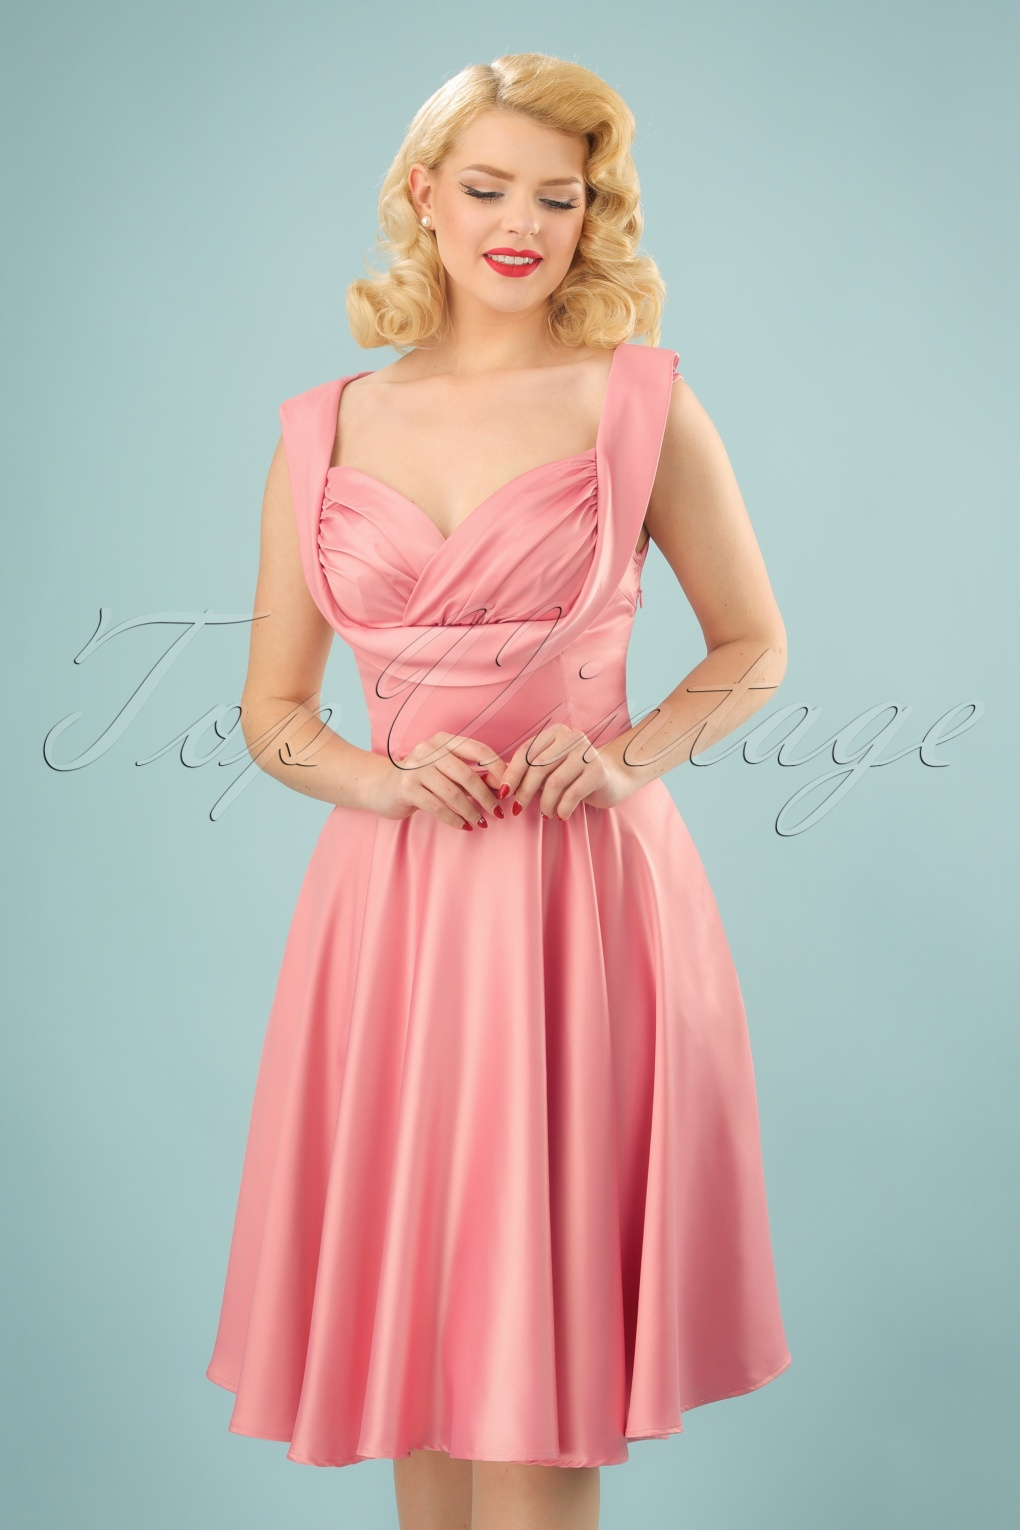 Luxury Pink Dress For Party Images - All Wedding Dresses ...